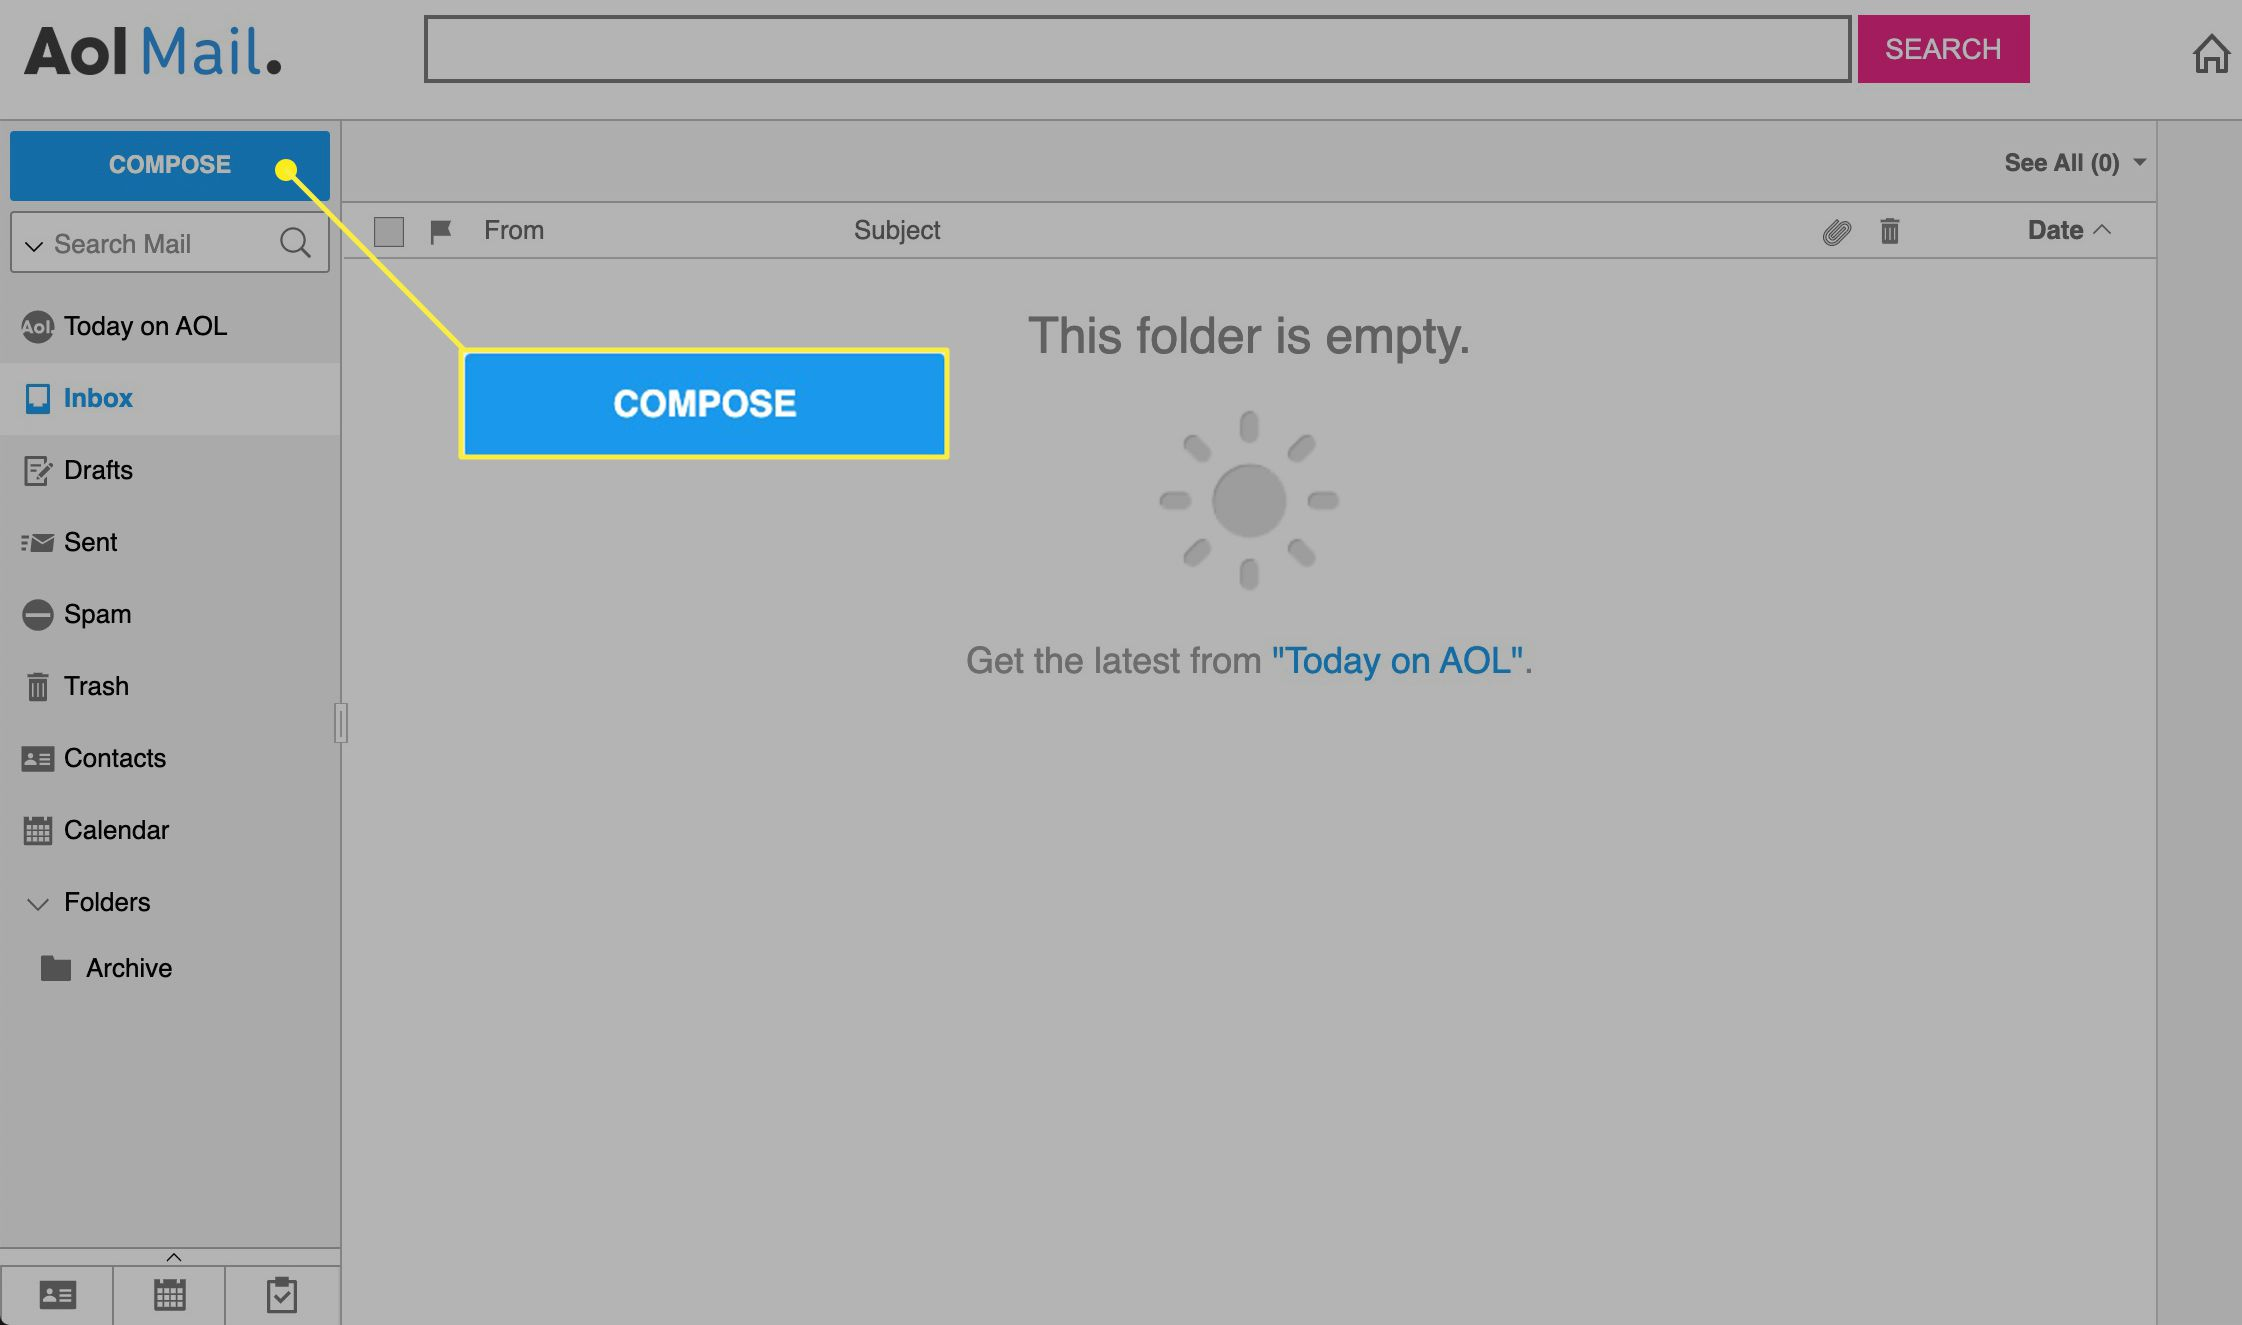 AOL Mail with Compose highlighted